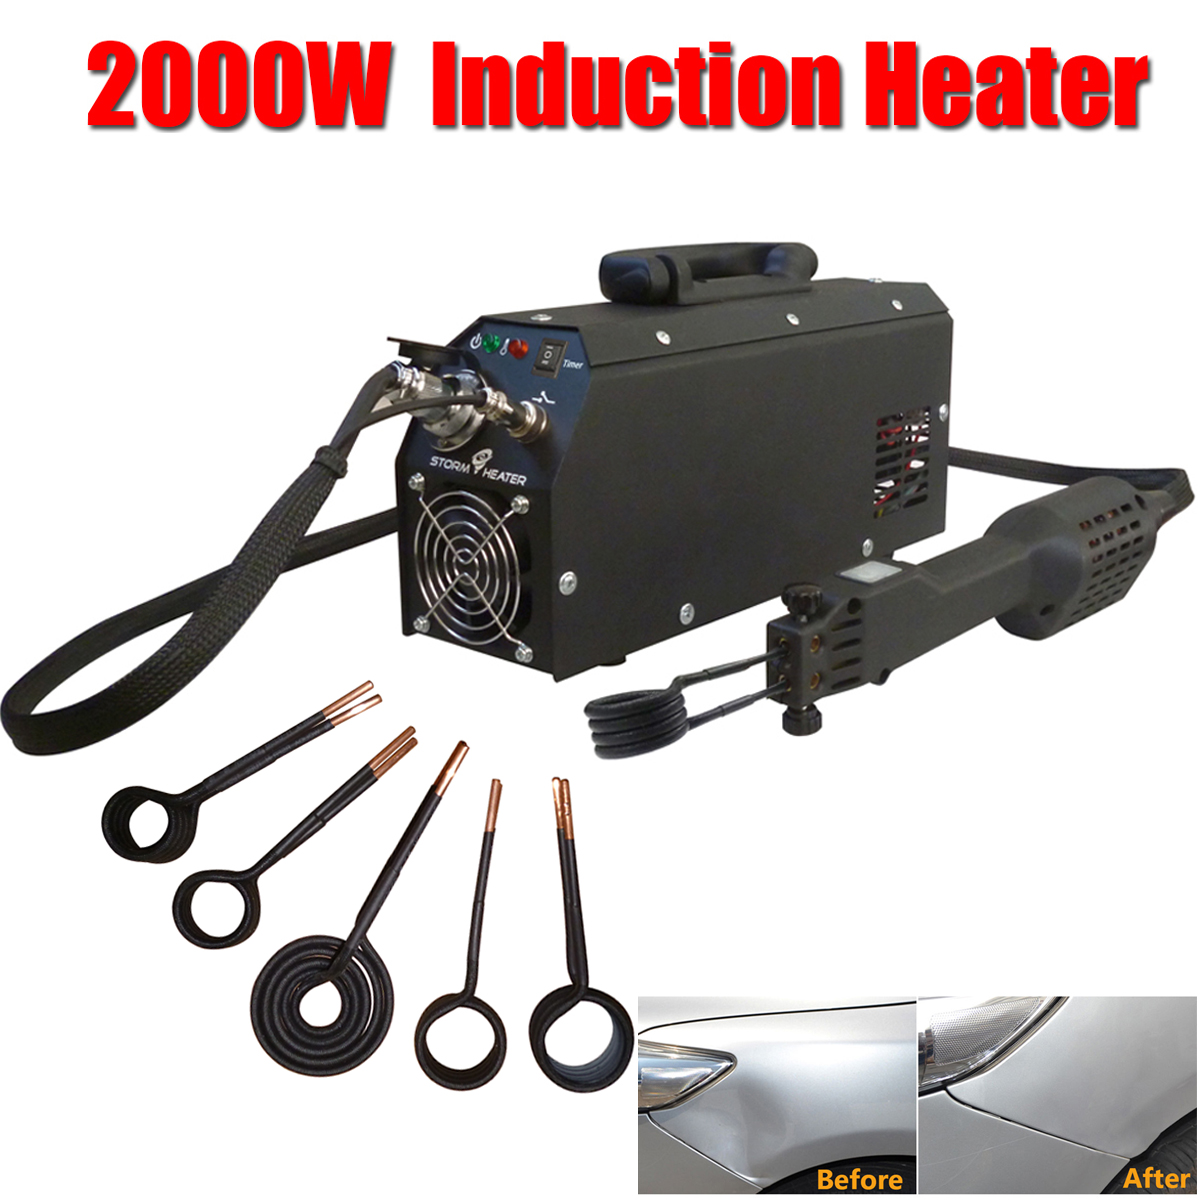 цена 110/220 V 2000W Car Induction Heater Repair Machines Tool Paintless Removing for Car Repair Removal of Dents Car Body Repair